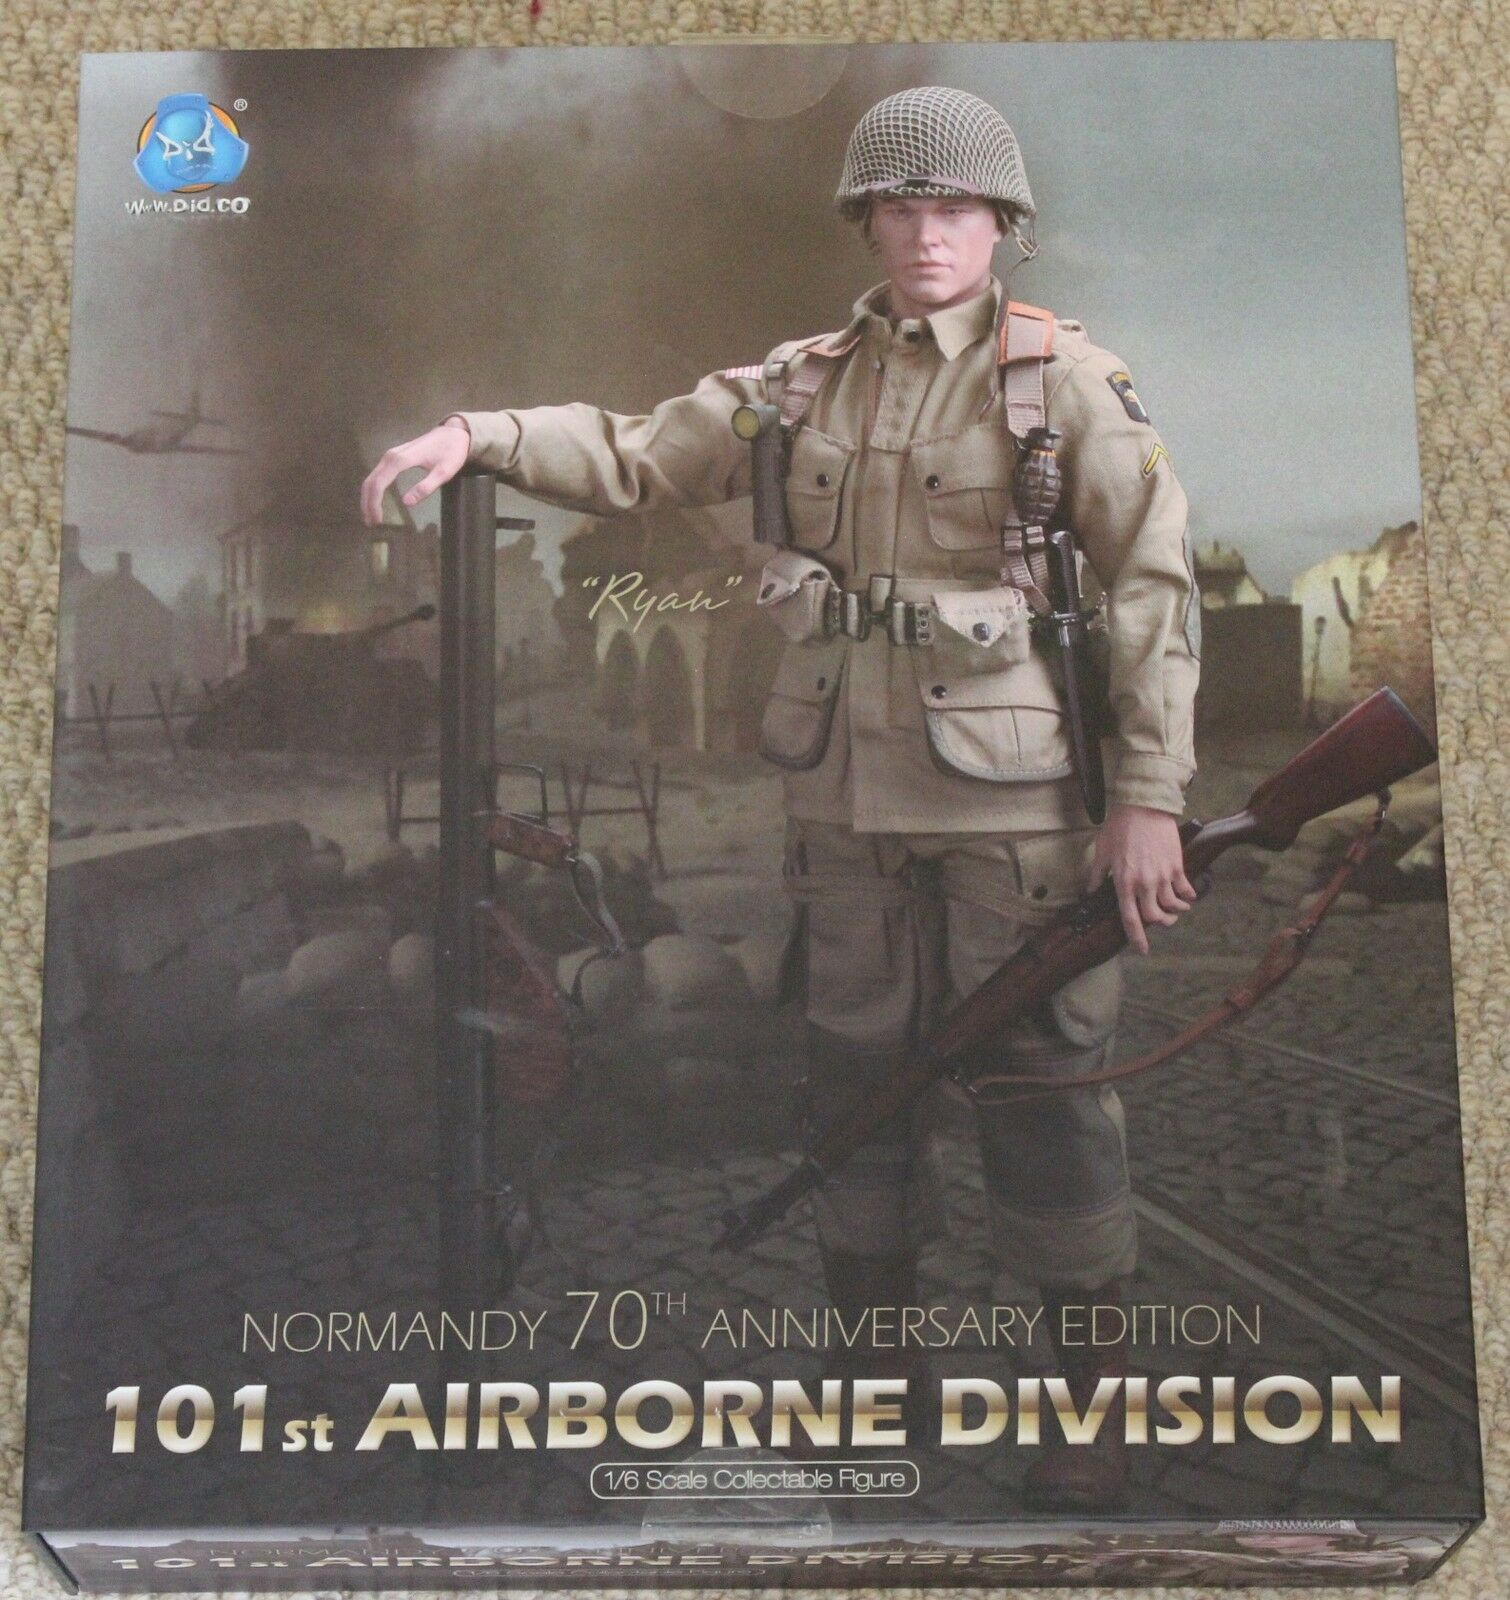 Did action figure 101 iarborne ryan para para para 1 6 12'' boxed hot toy ww11 dragon 2be66f